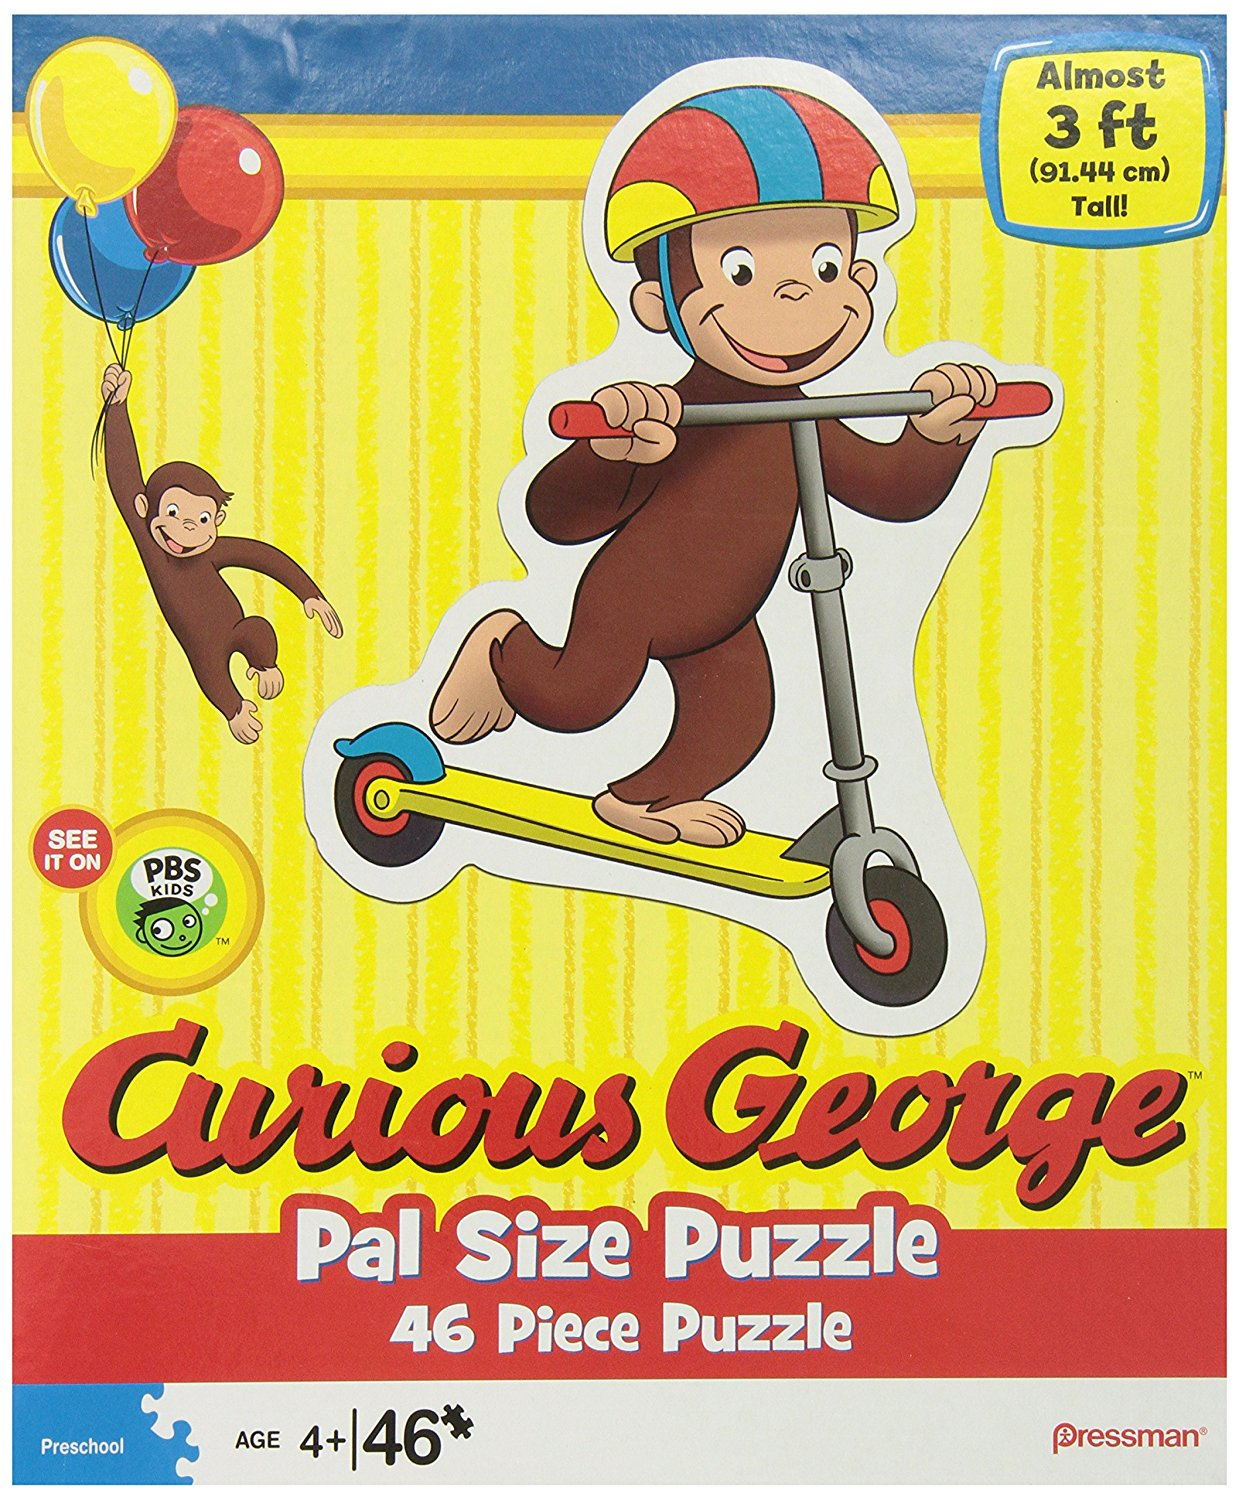 Curious George Pal Size Puzzles, Styles may vary, 46 pieces included By Pressman Toy by